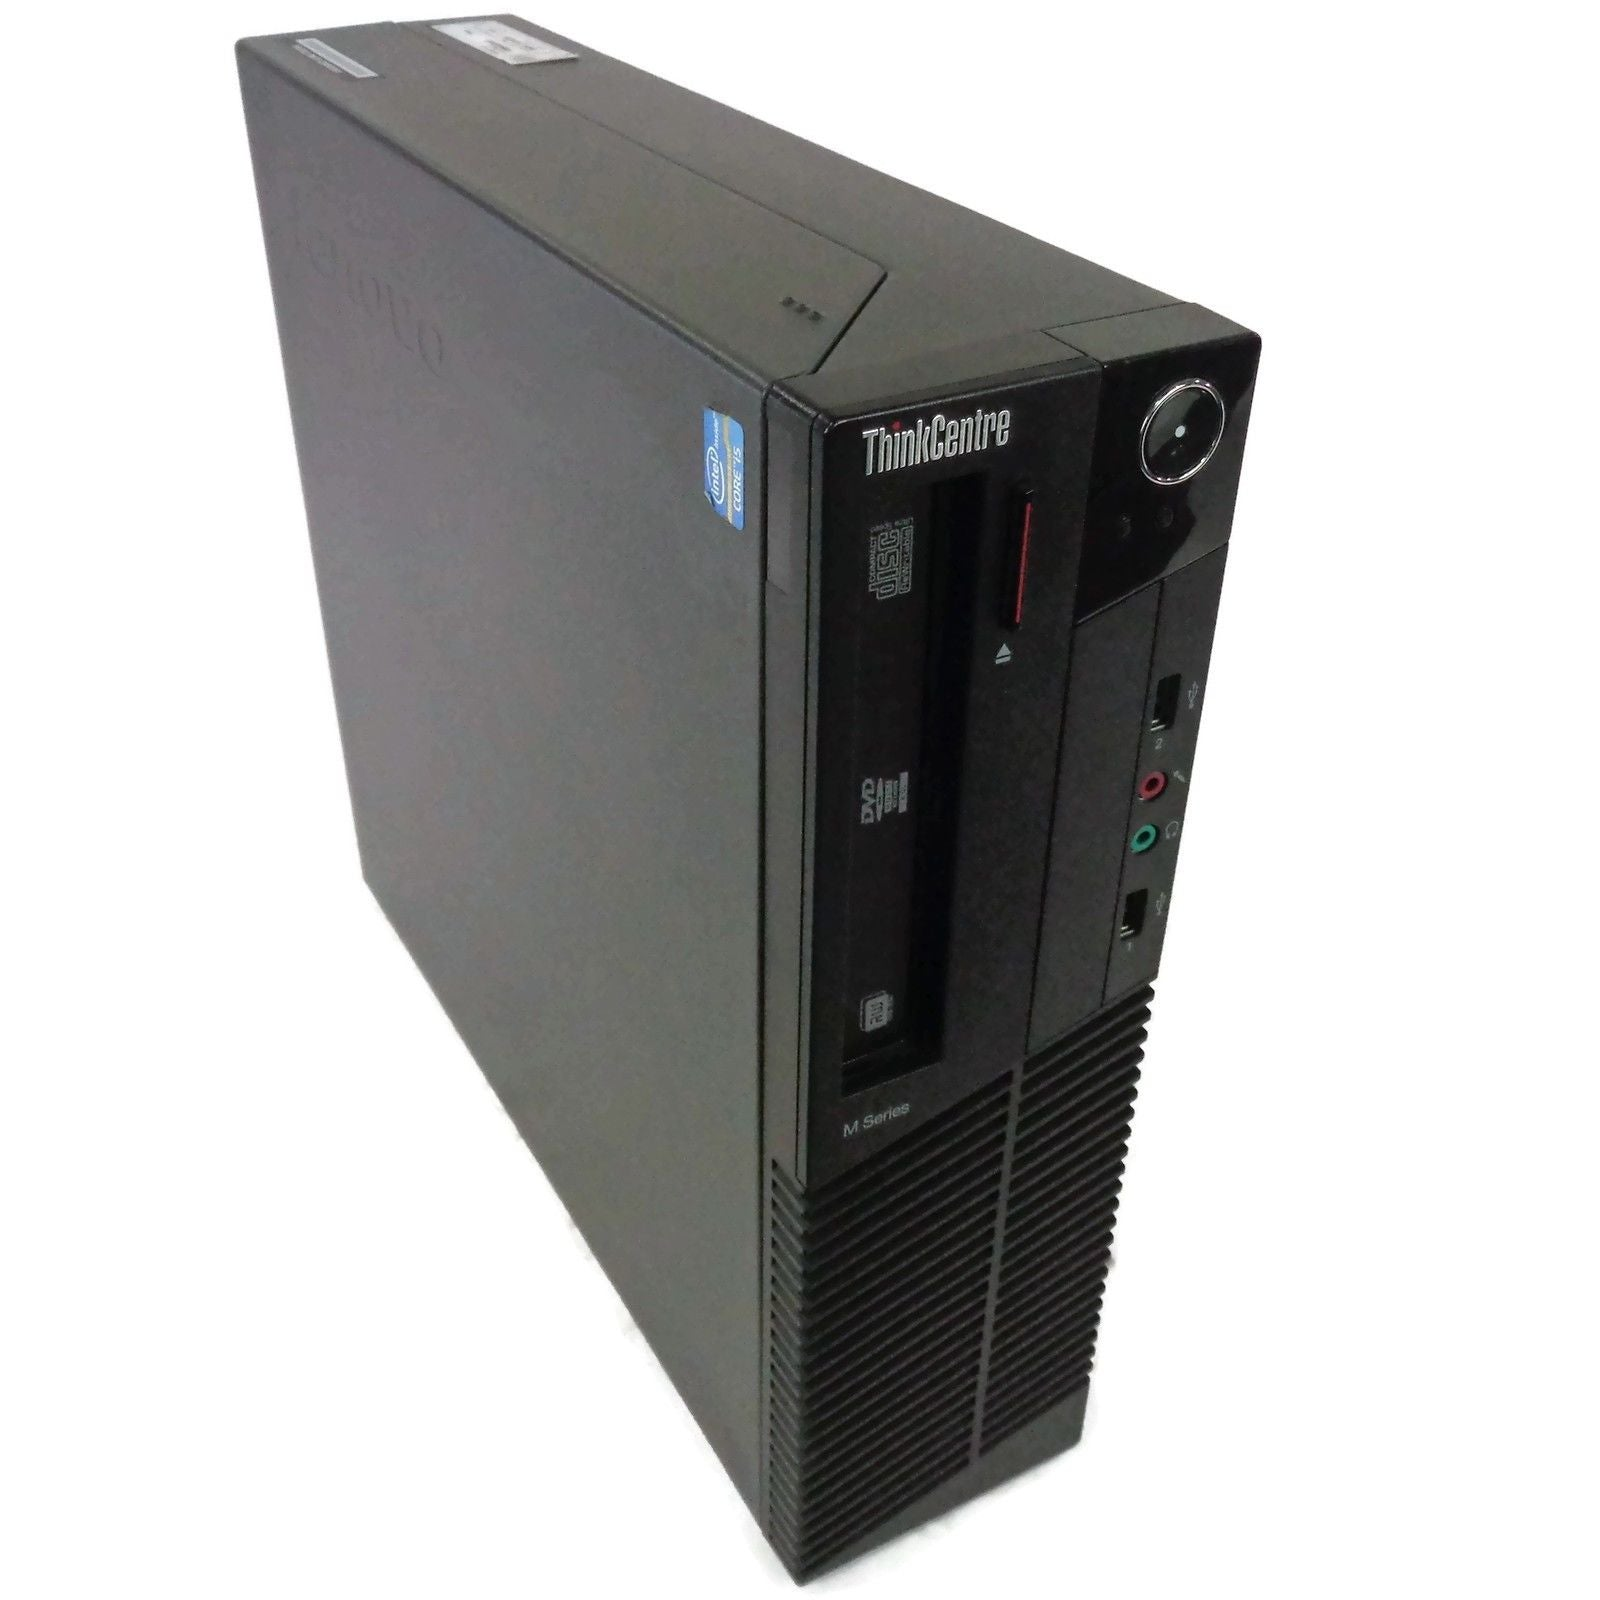 Lenovo M92p SFF Desktop, Intel Quad Core i5-3470 3.2Ghz, 4GB 500GB, Windows 10 Pro, Refurbished-Atmark Trading